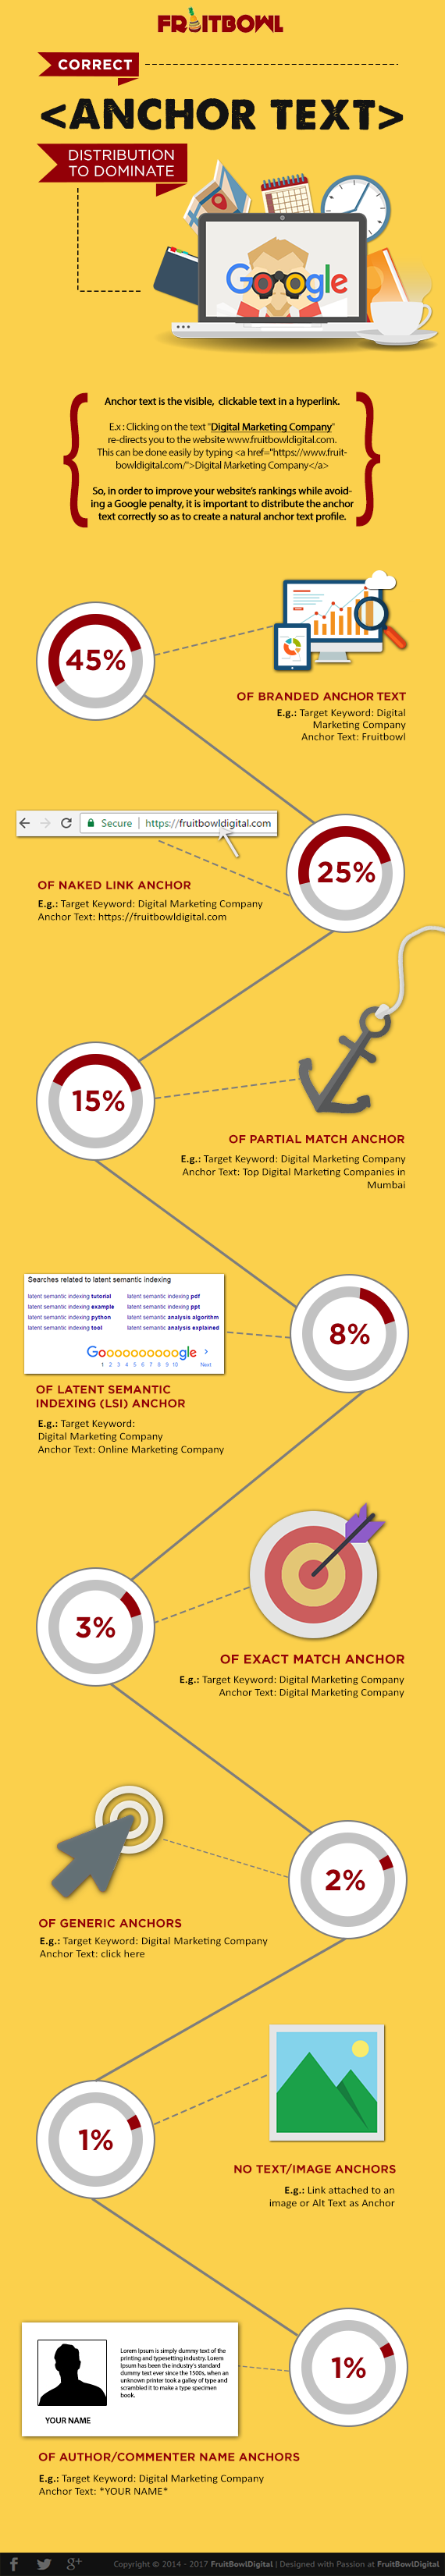 Correct Anchor Text Distribution to Dominate Google – Fruitbowl Digital